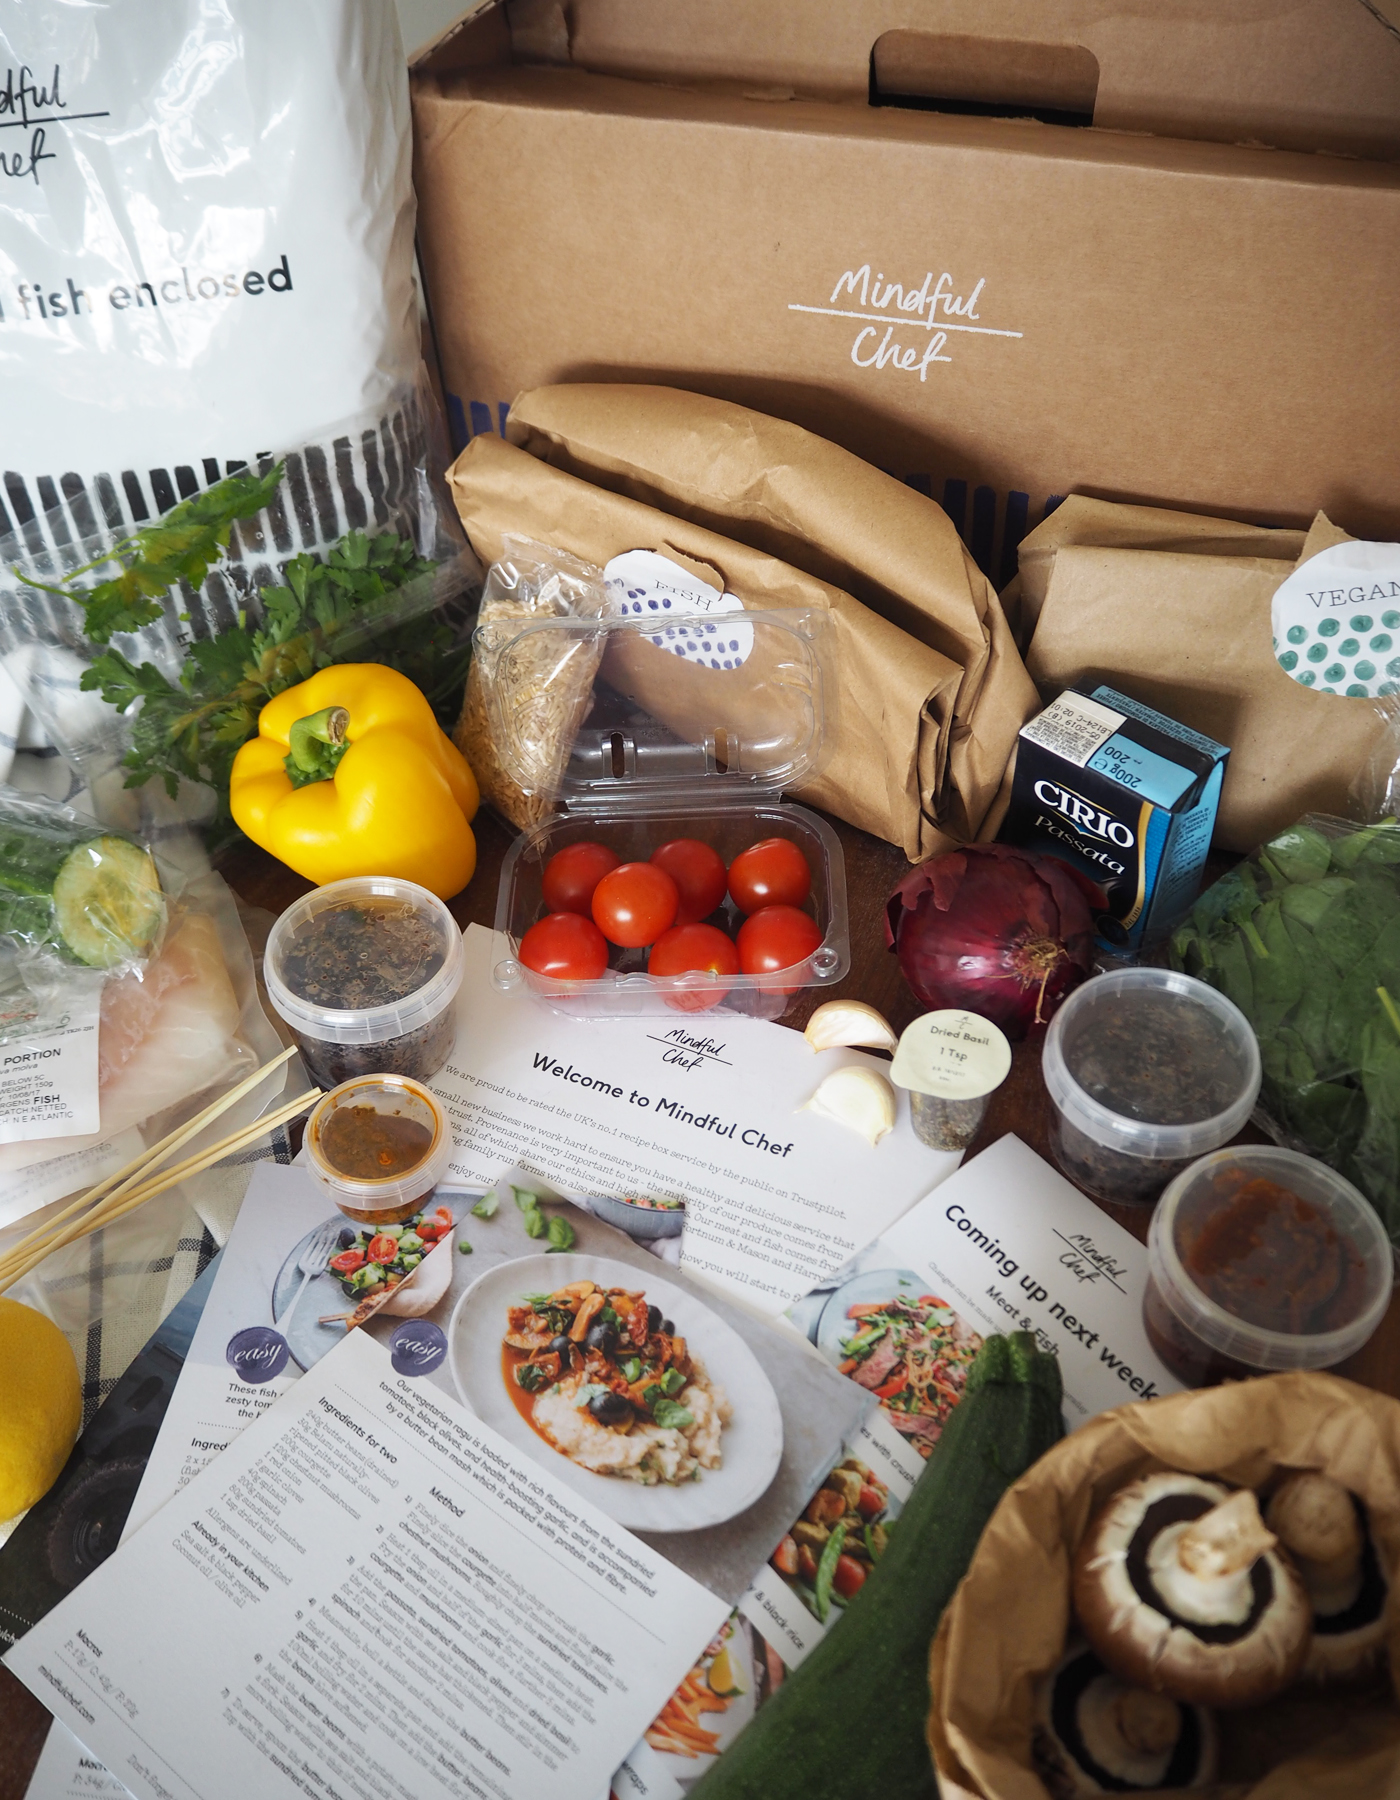 Mindful Chef box